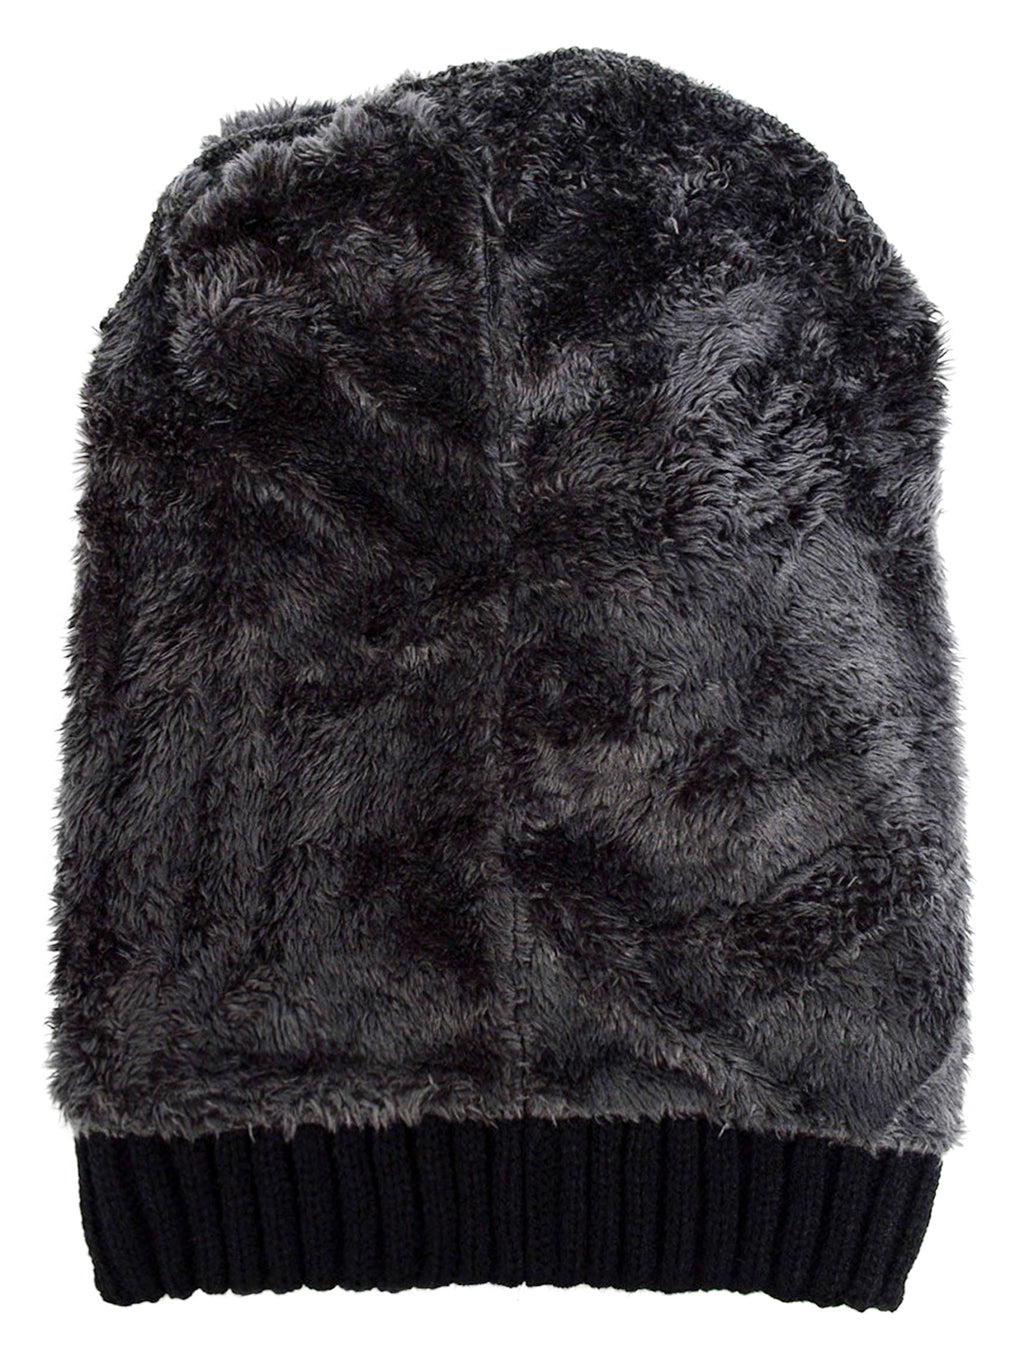 Mens Black Knit Hat With Fur Lining